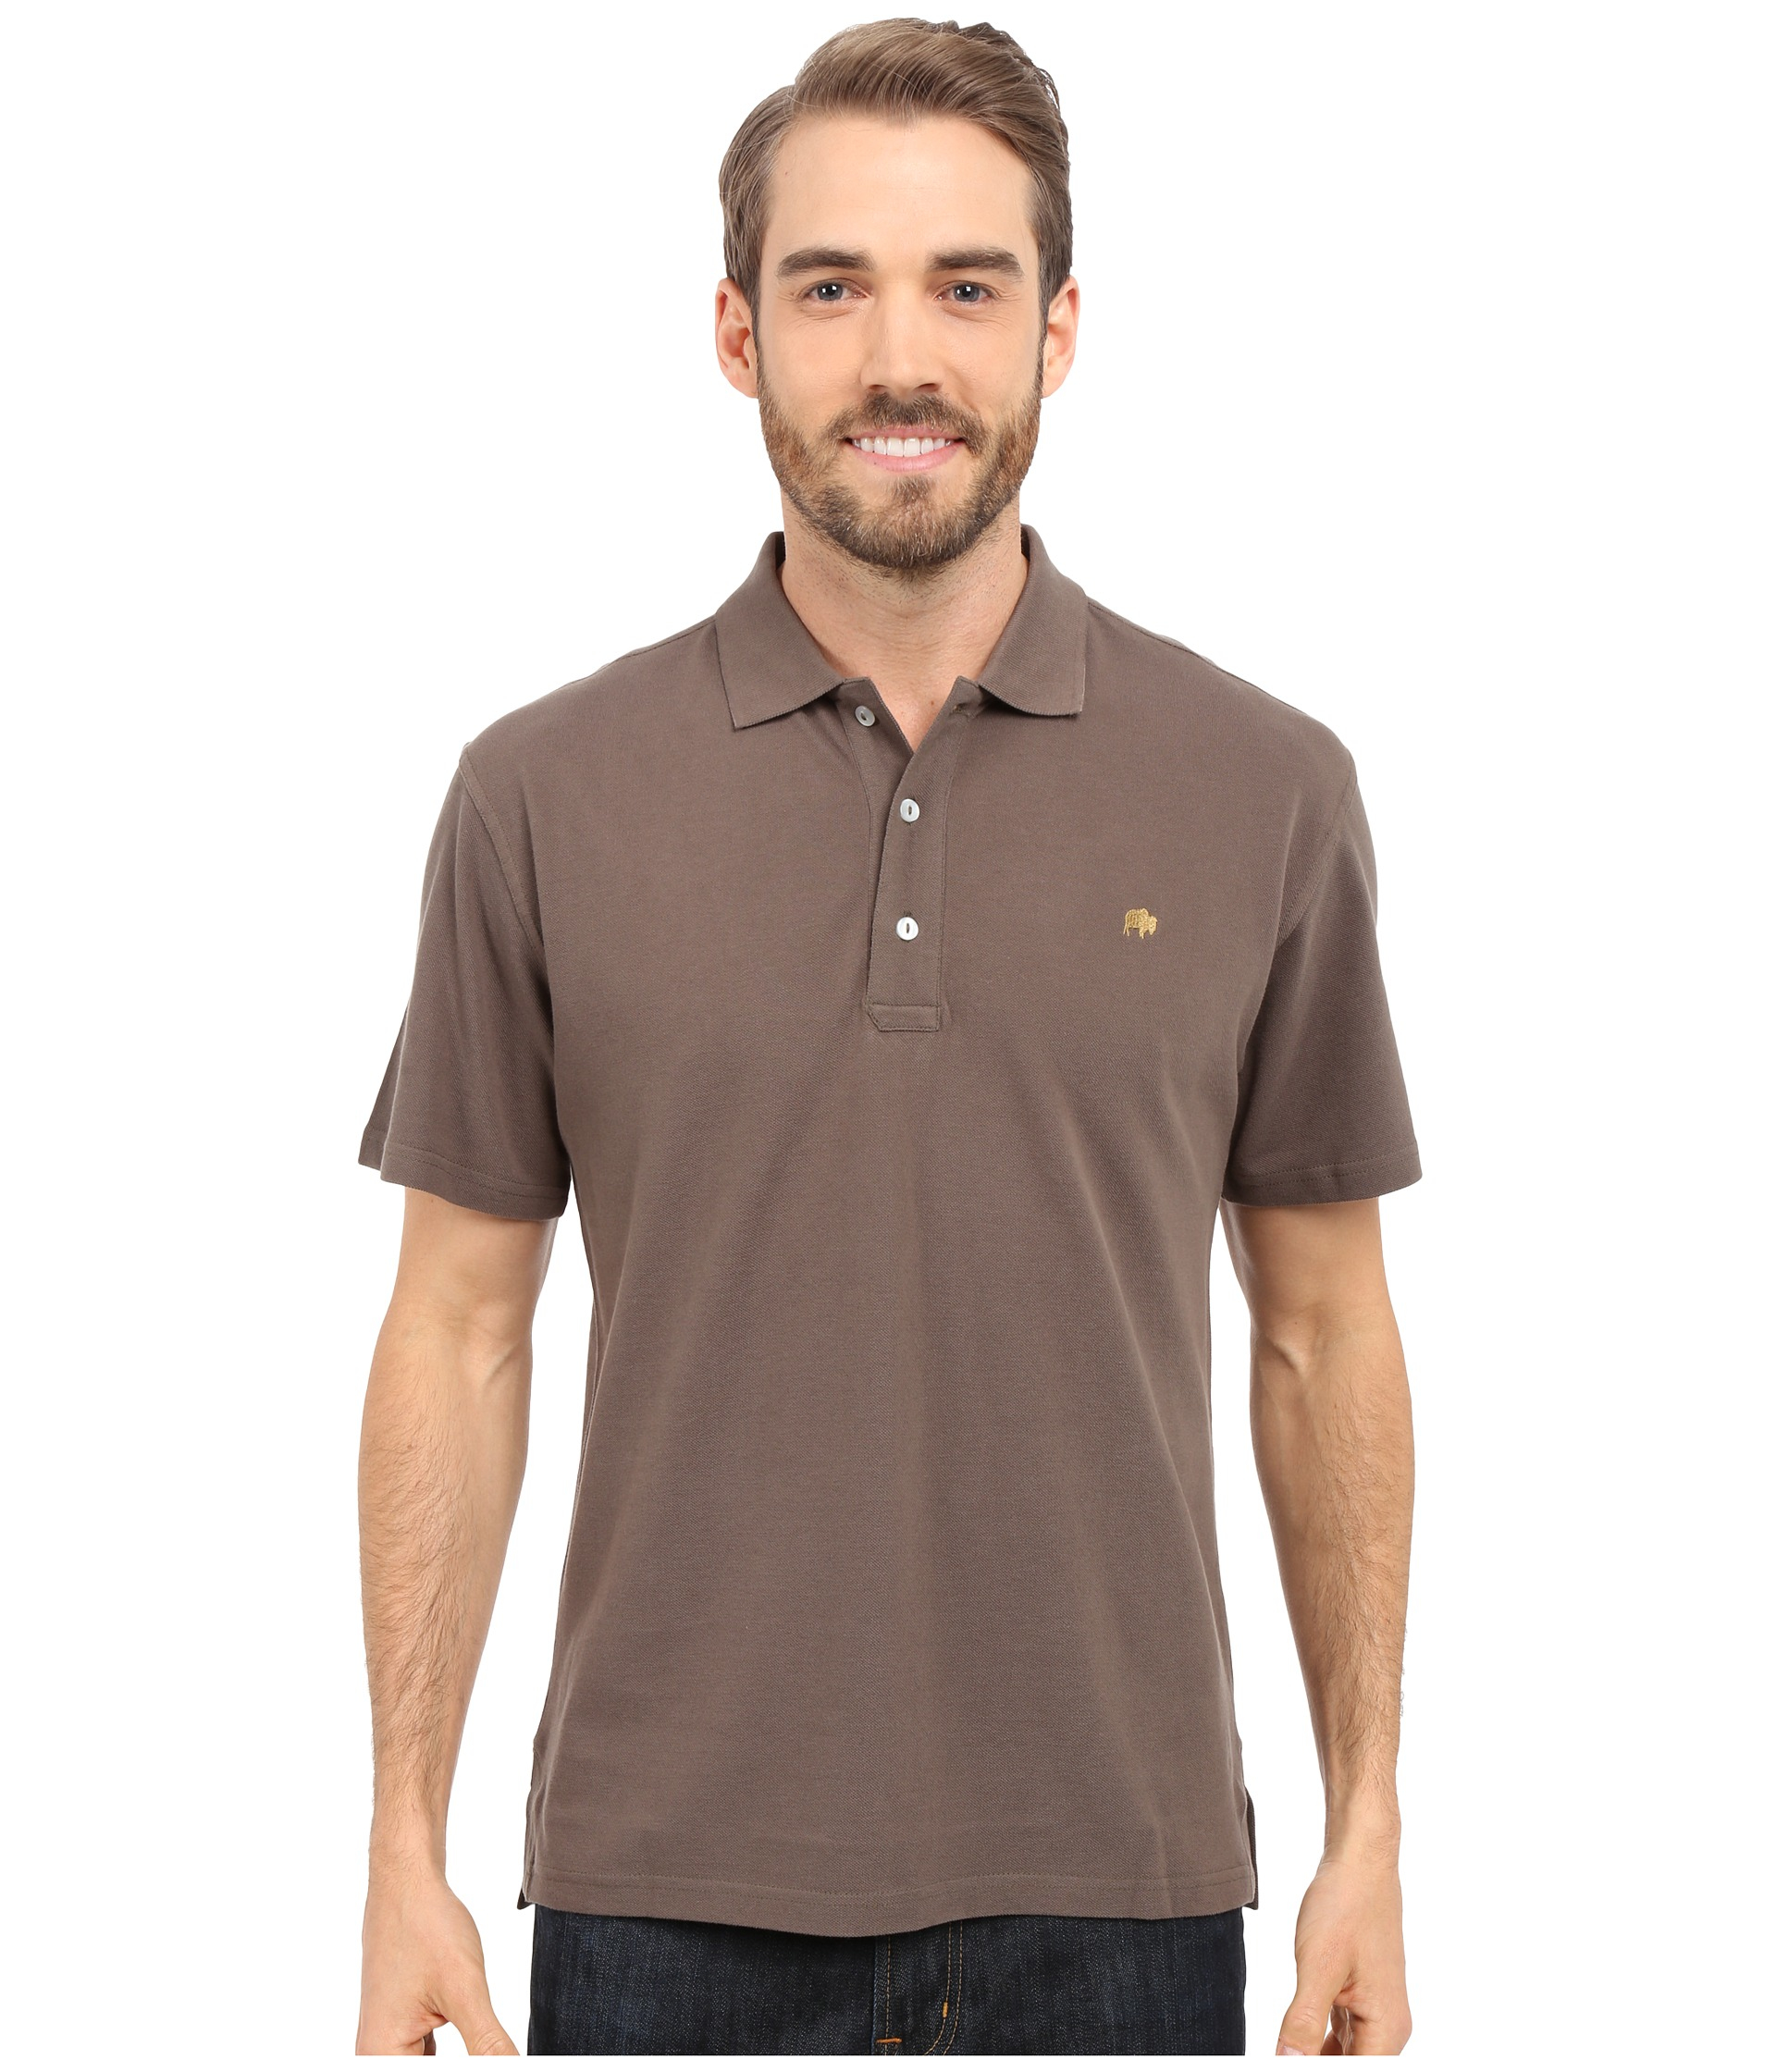 Mountain Khakis Bison Polo Shirt In Brown For Men Lyst